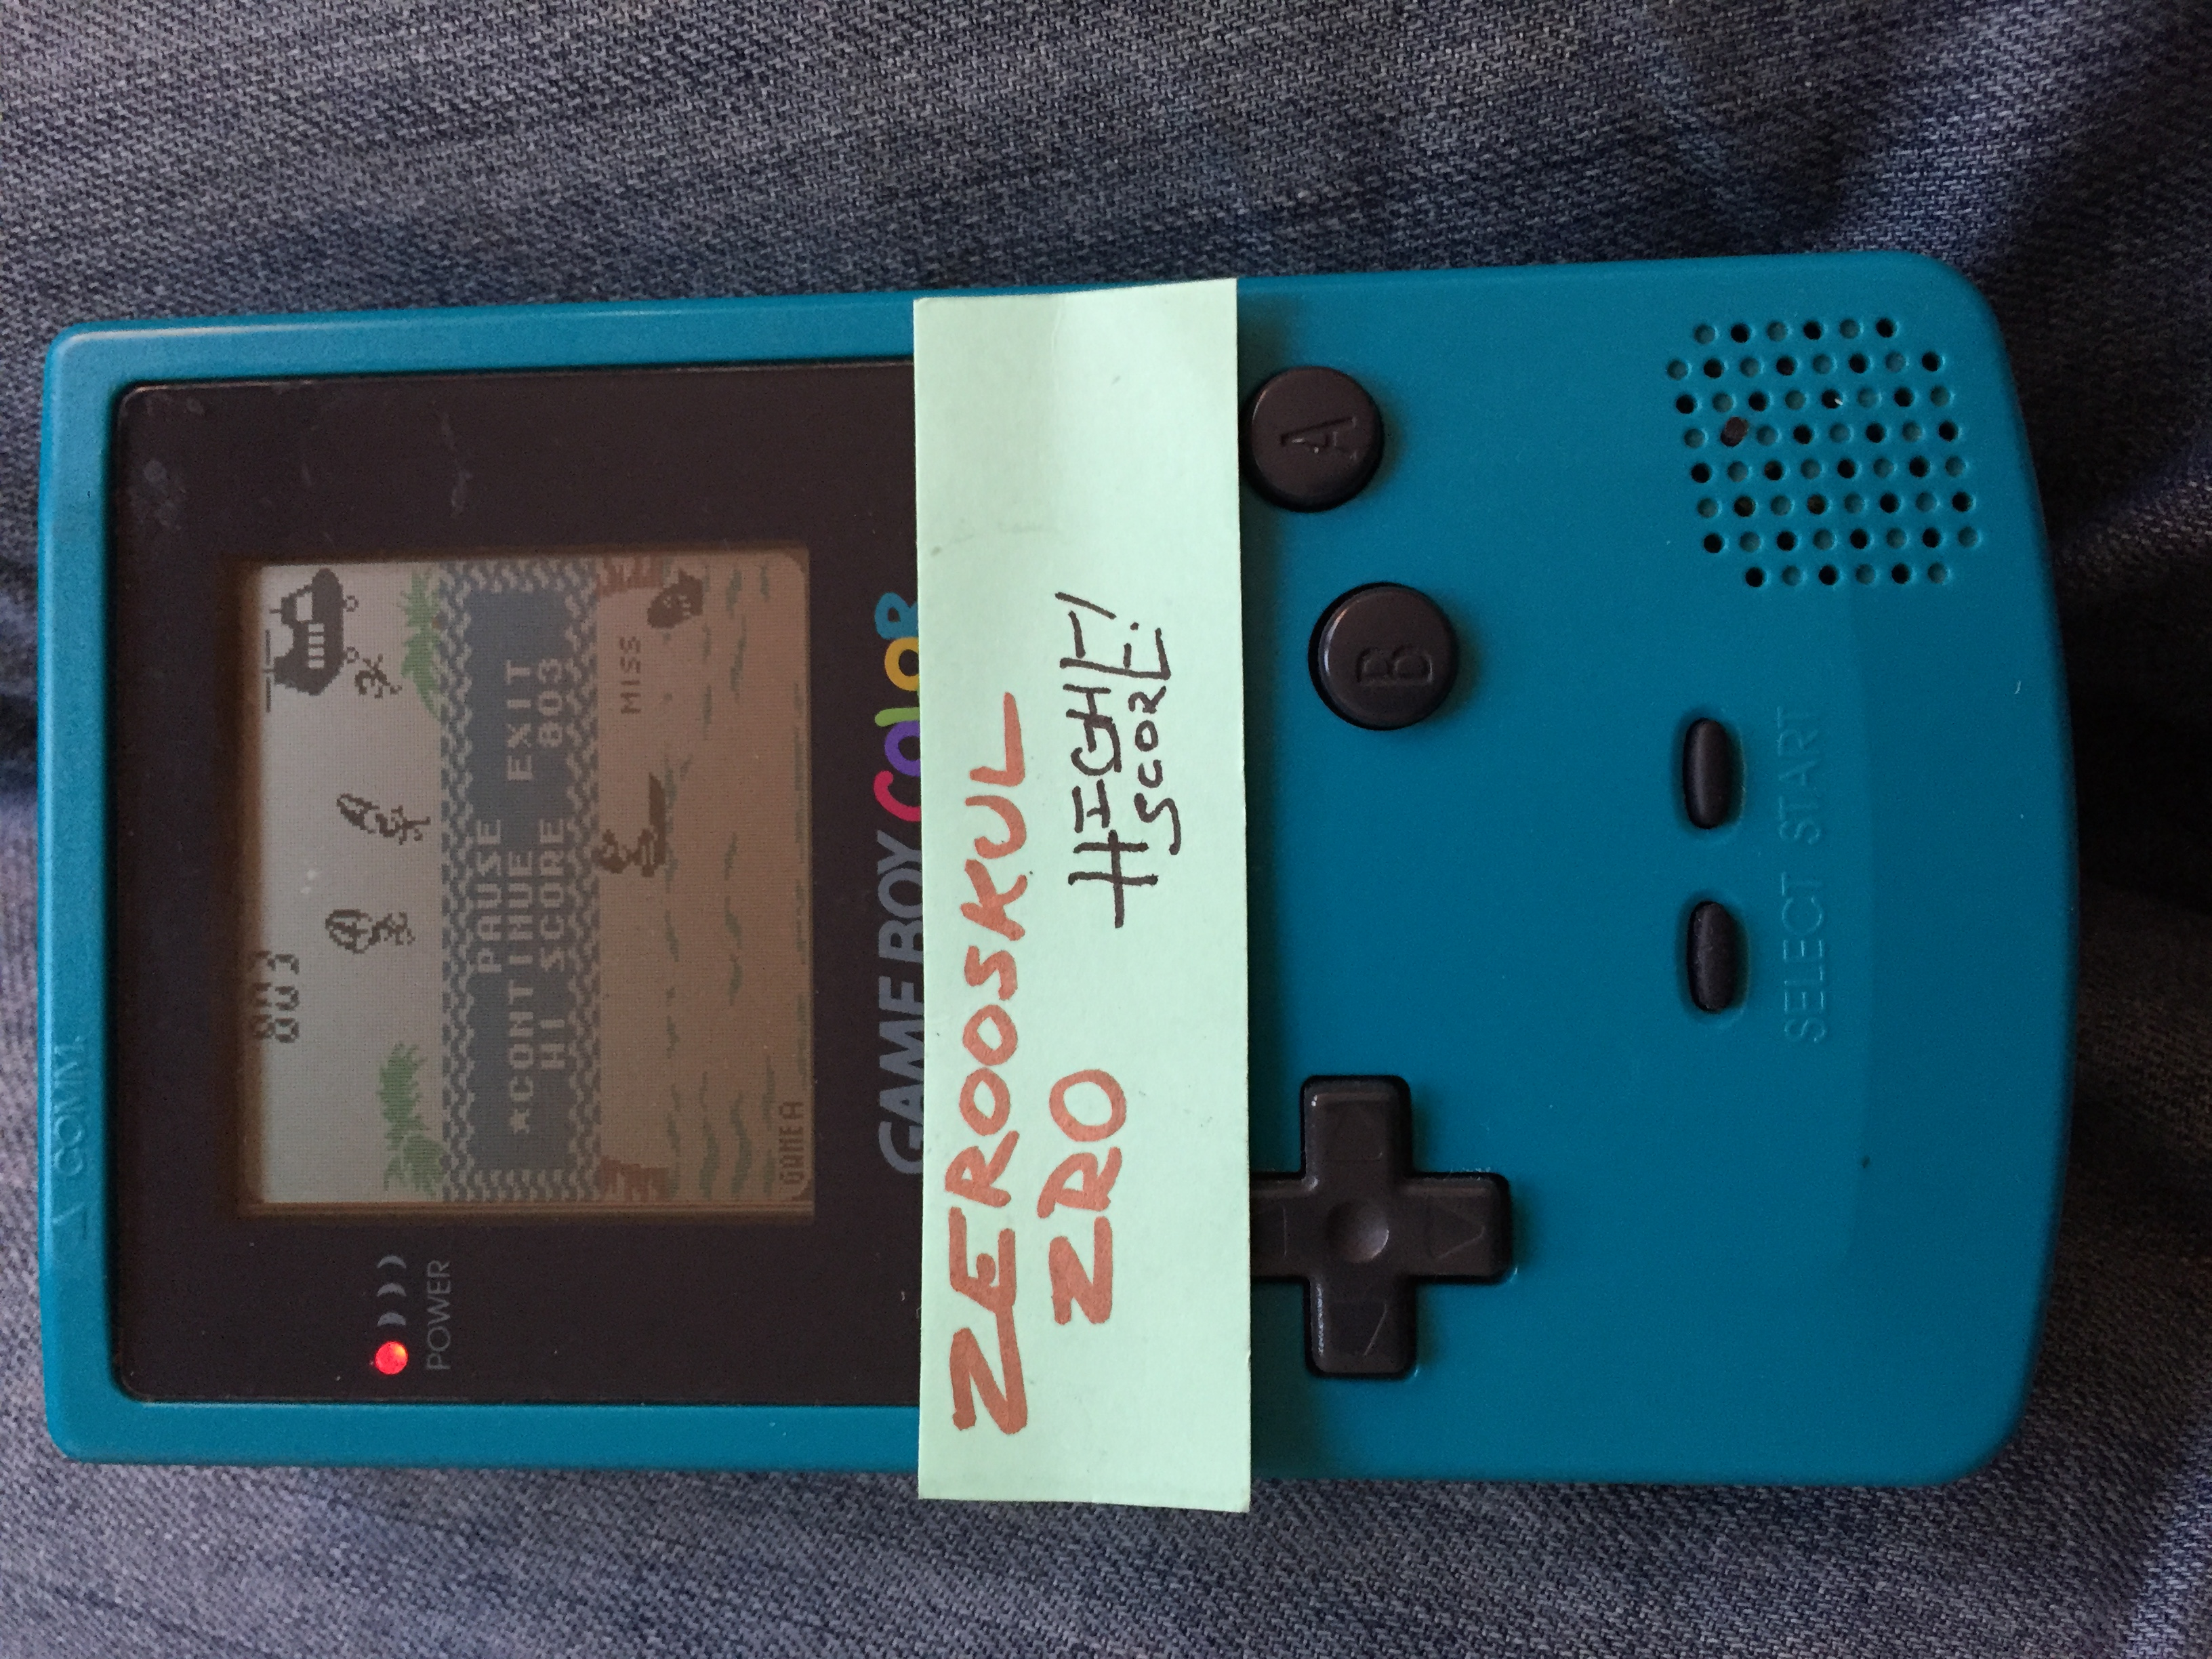 zerooskul: Game & Watch Gallery 2: Parachute: Classic: Easy (Game Boy Color) 855 points on 2018-06-30 18:55:54